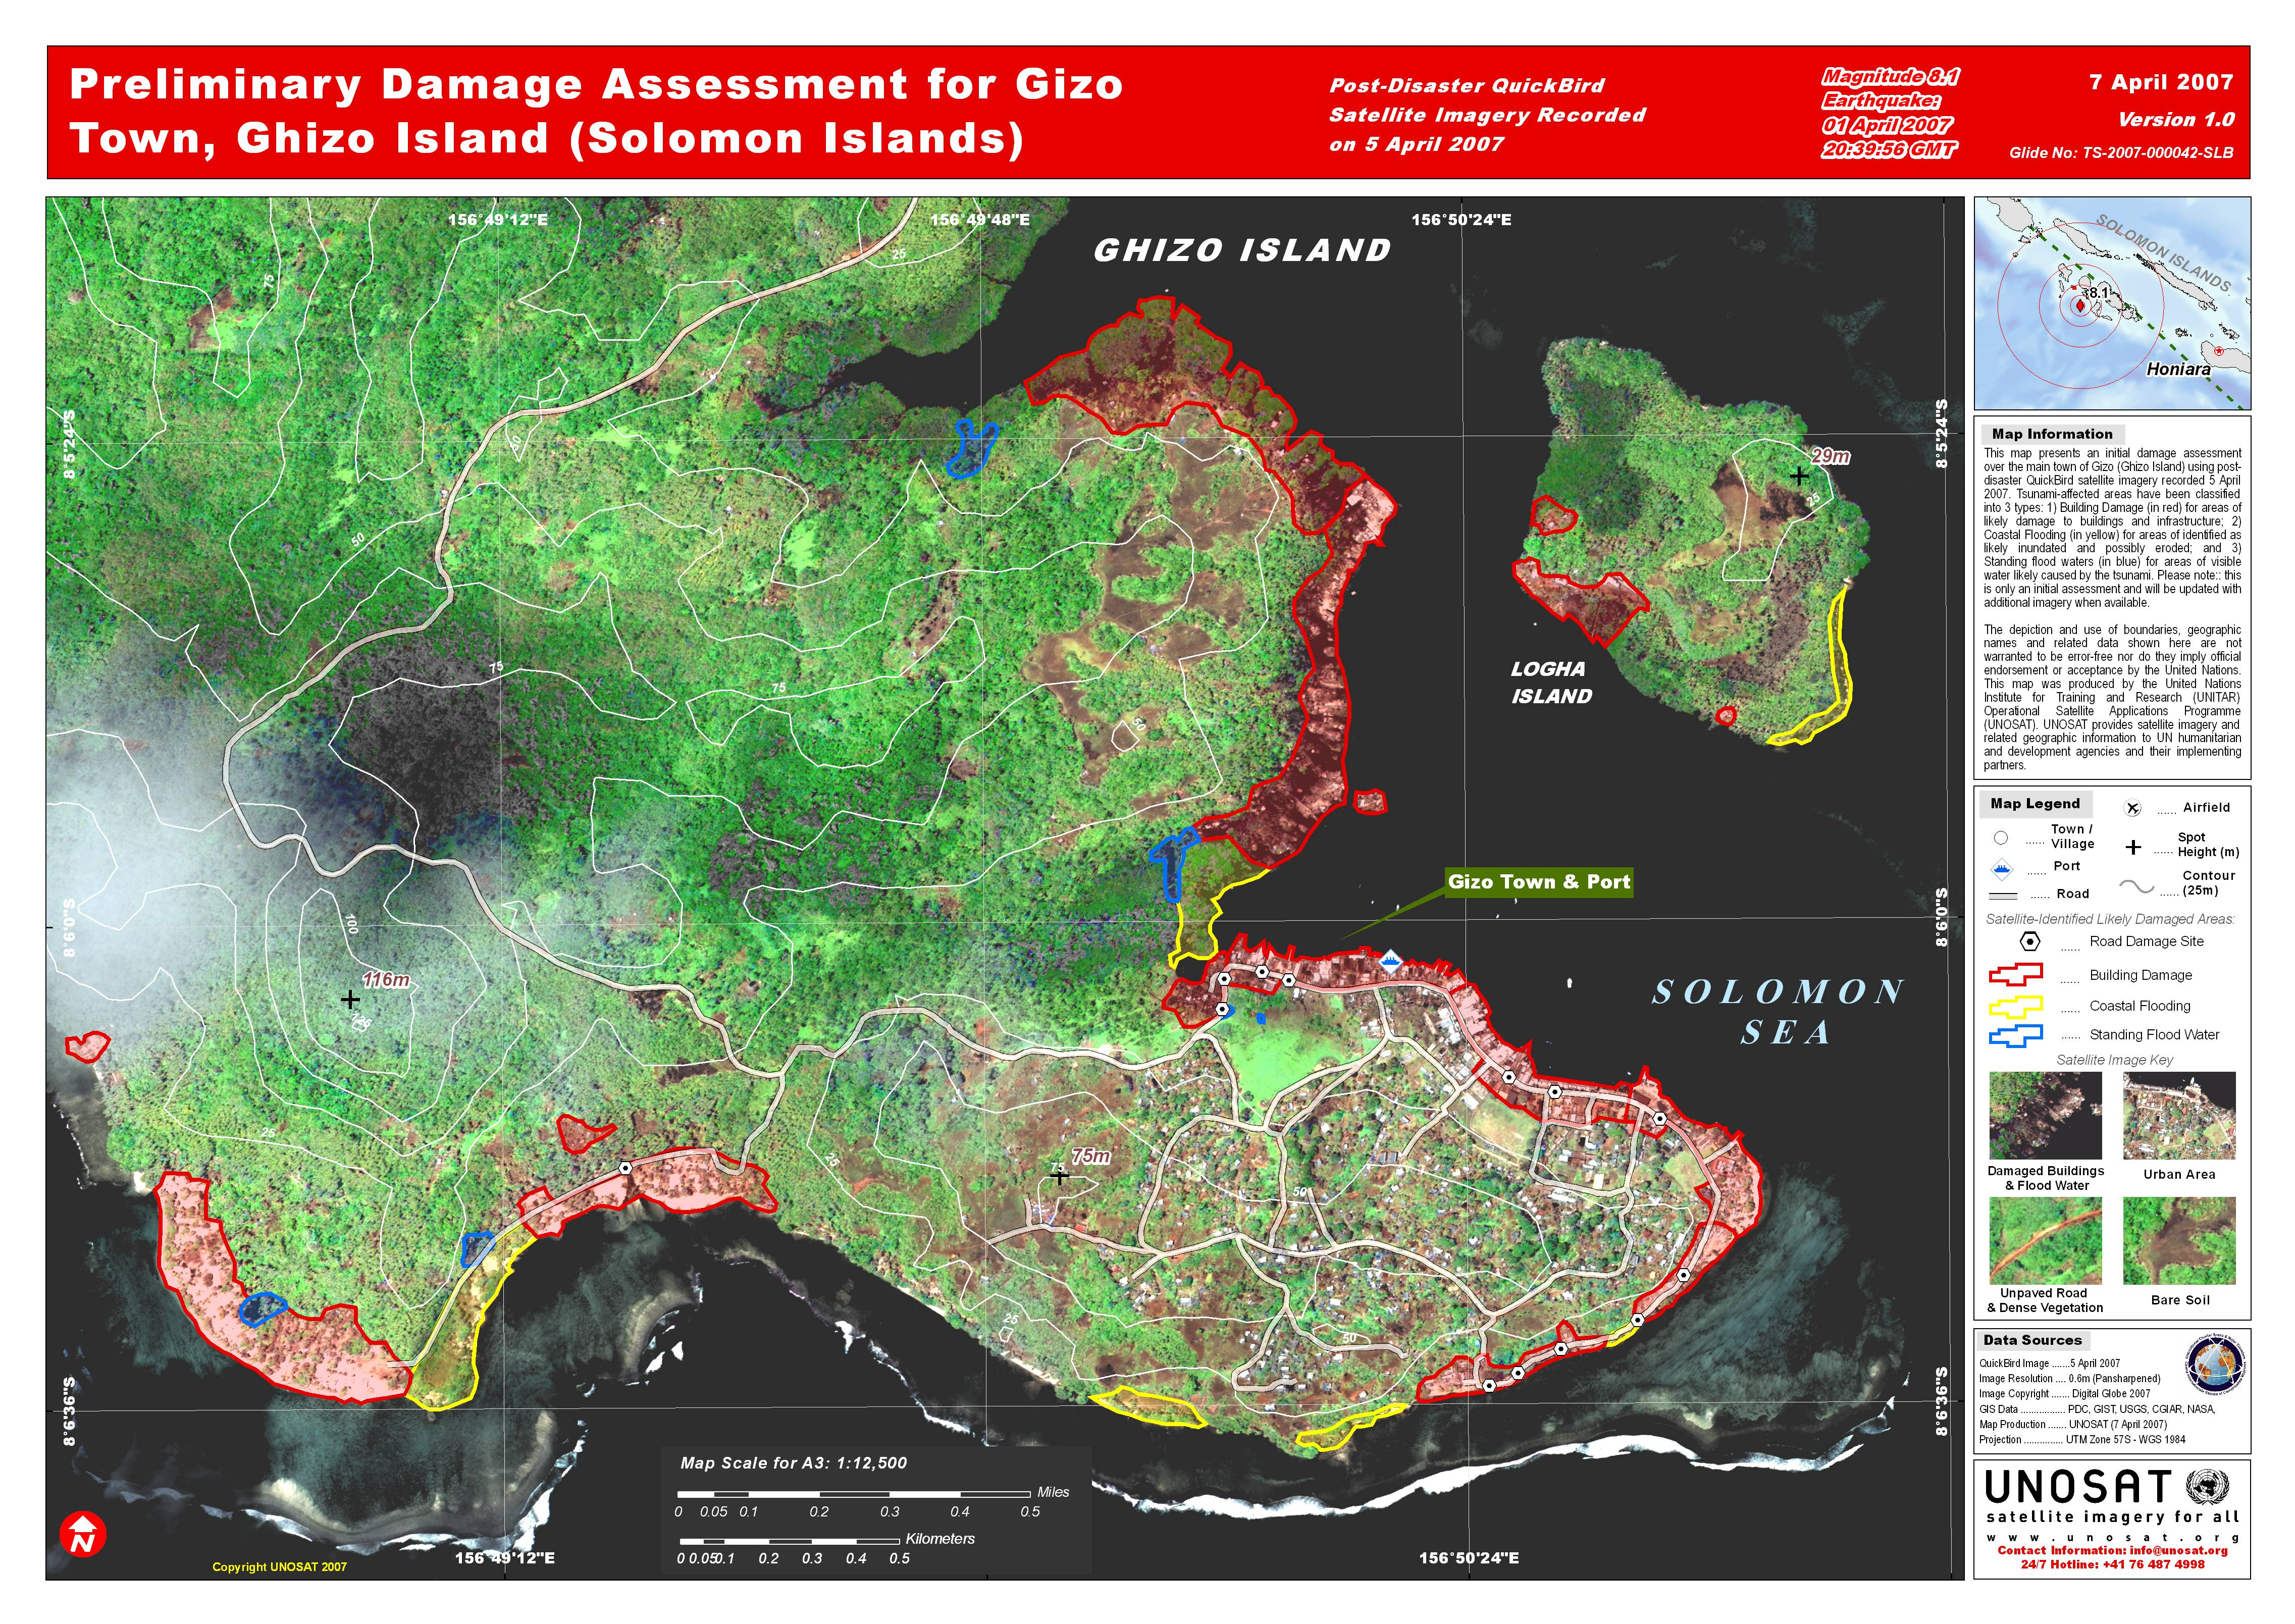 Preliminary Damage Assessment for Gizo Town, Ghizo Island